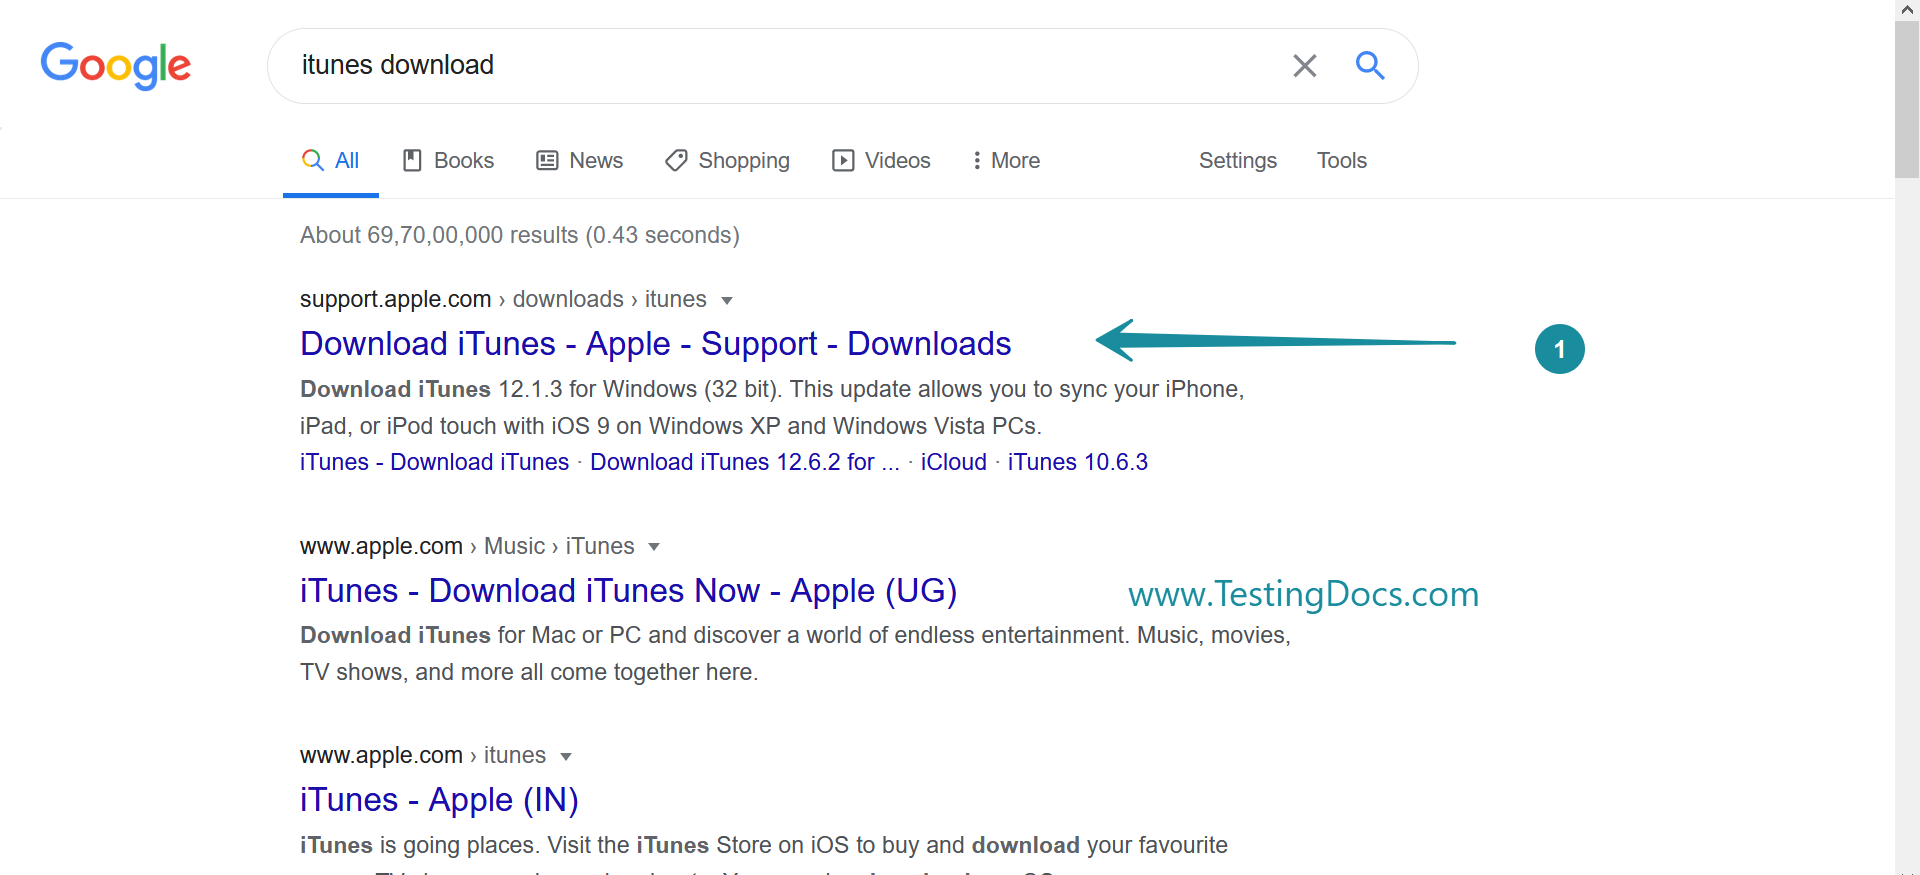 ITunes Google Download Search